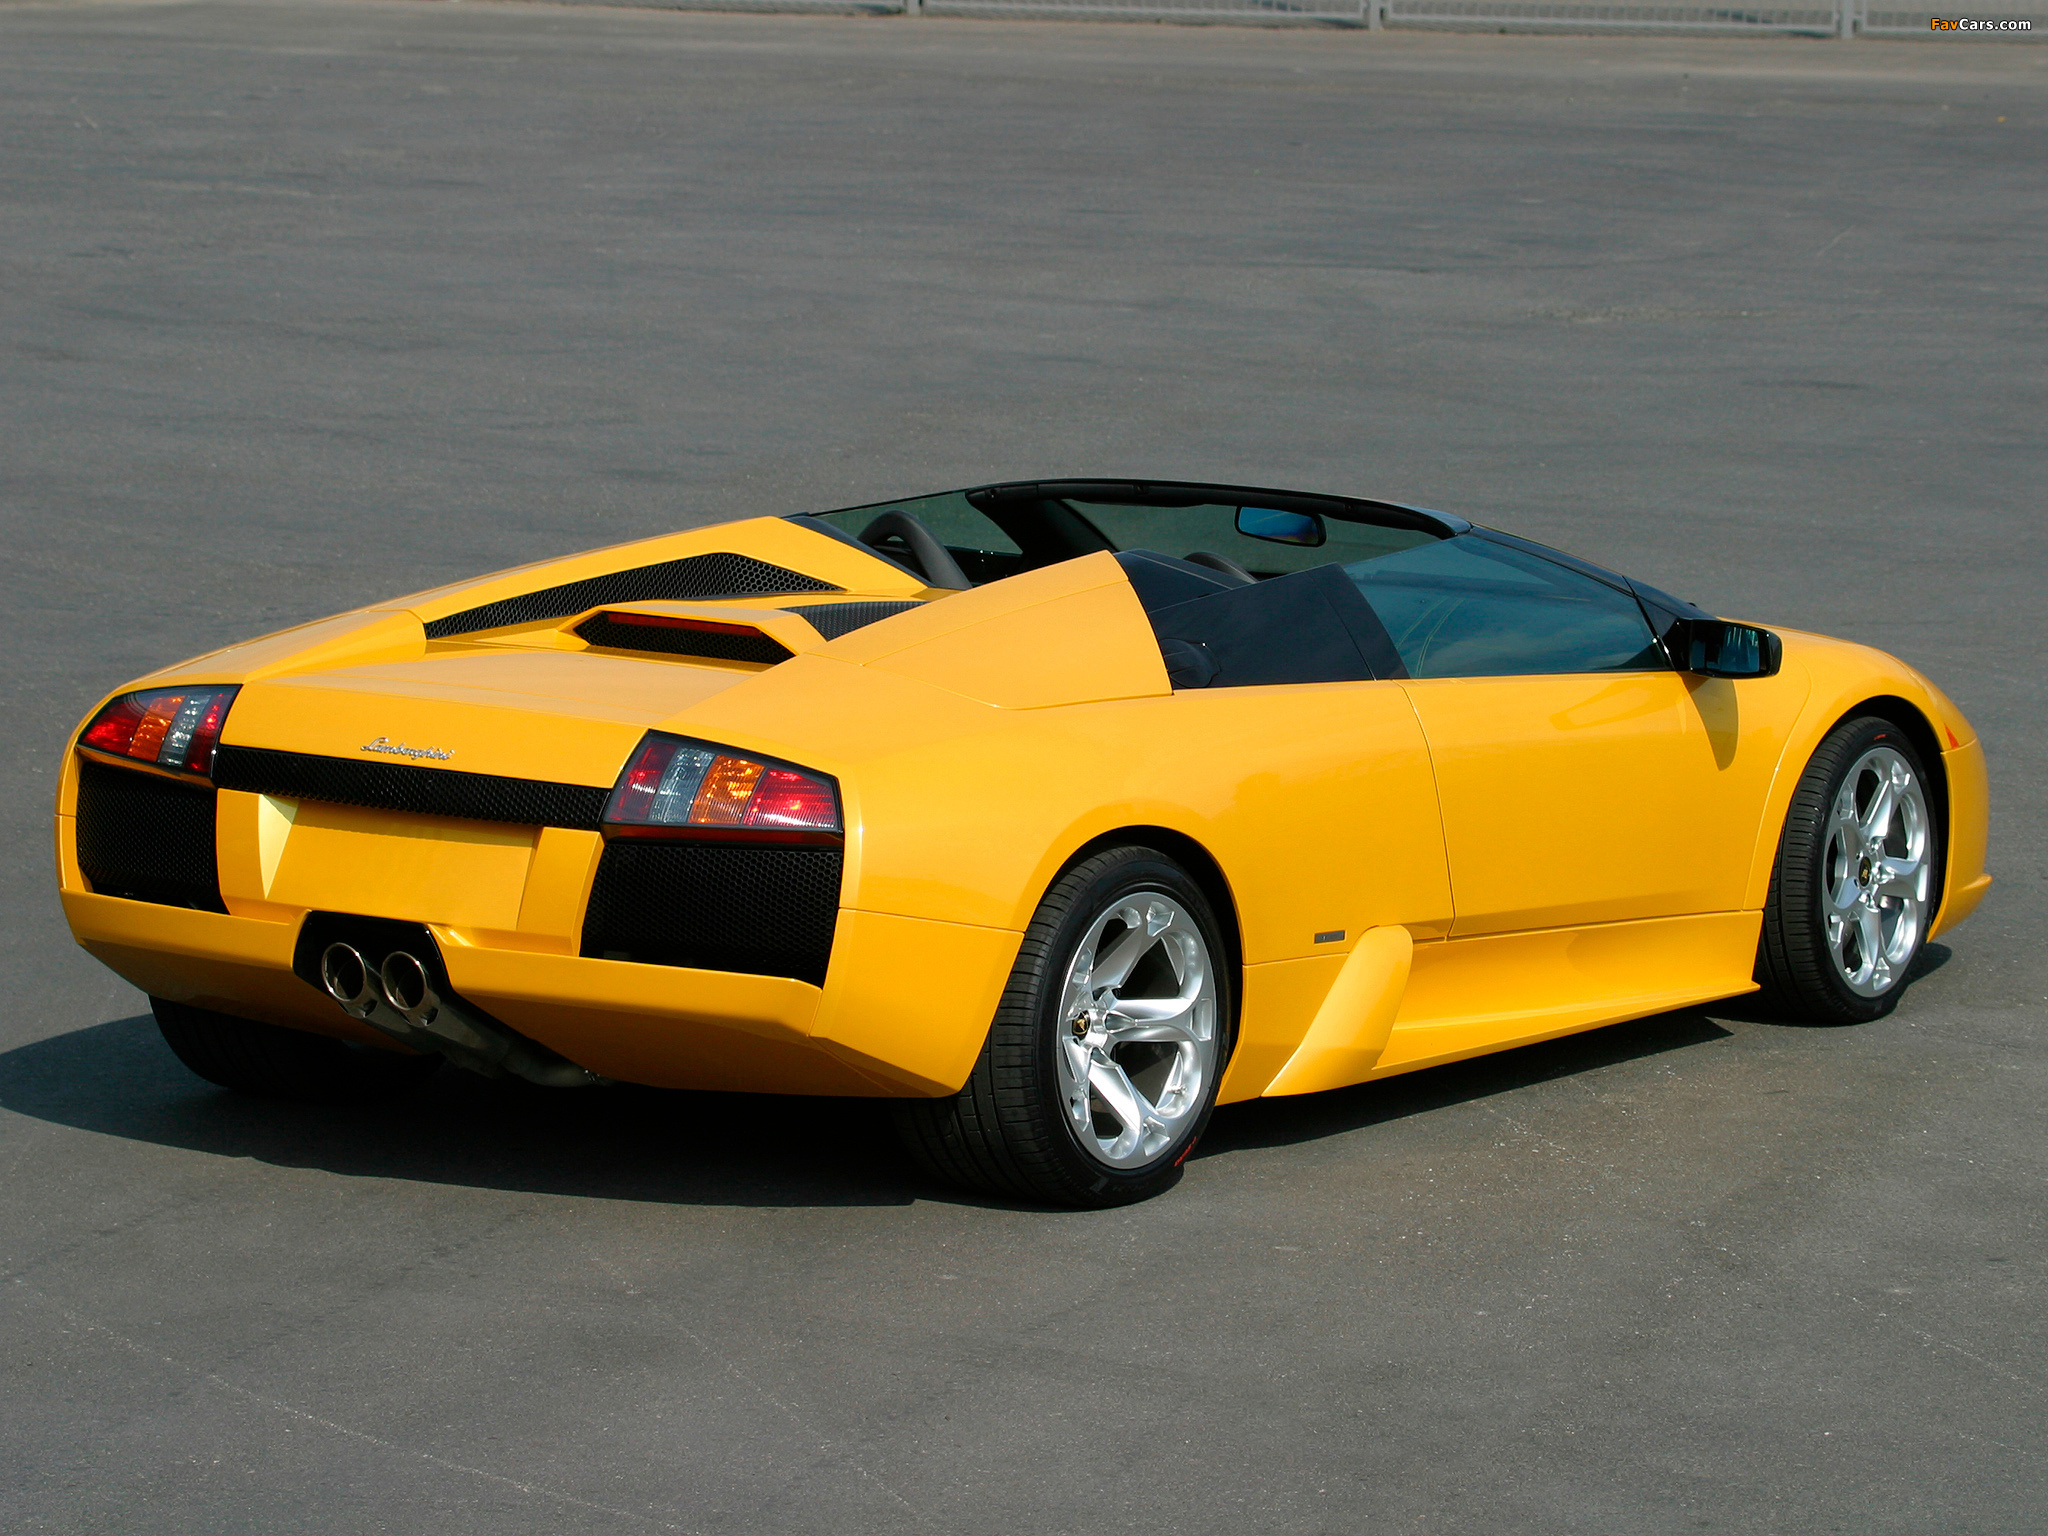 Photos Of Lamborghini Murcielago Roadster 2004 06 2048x1536